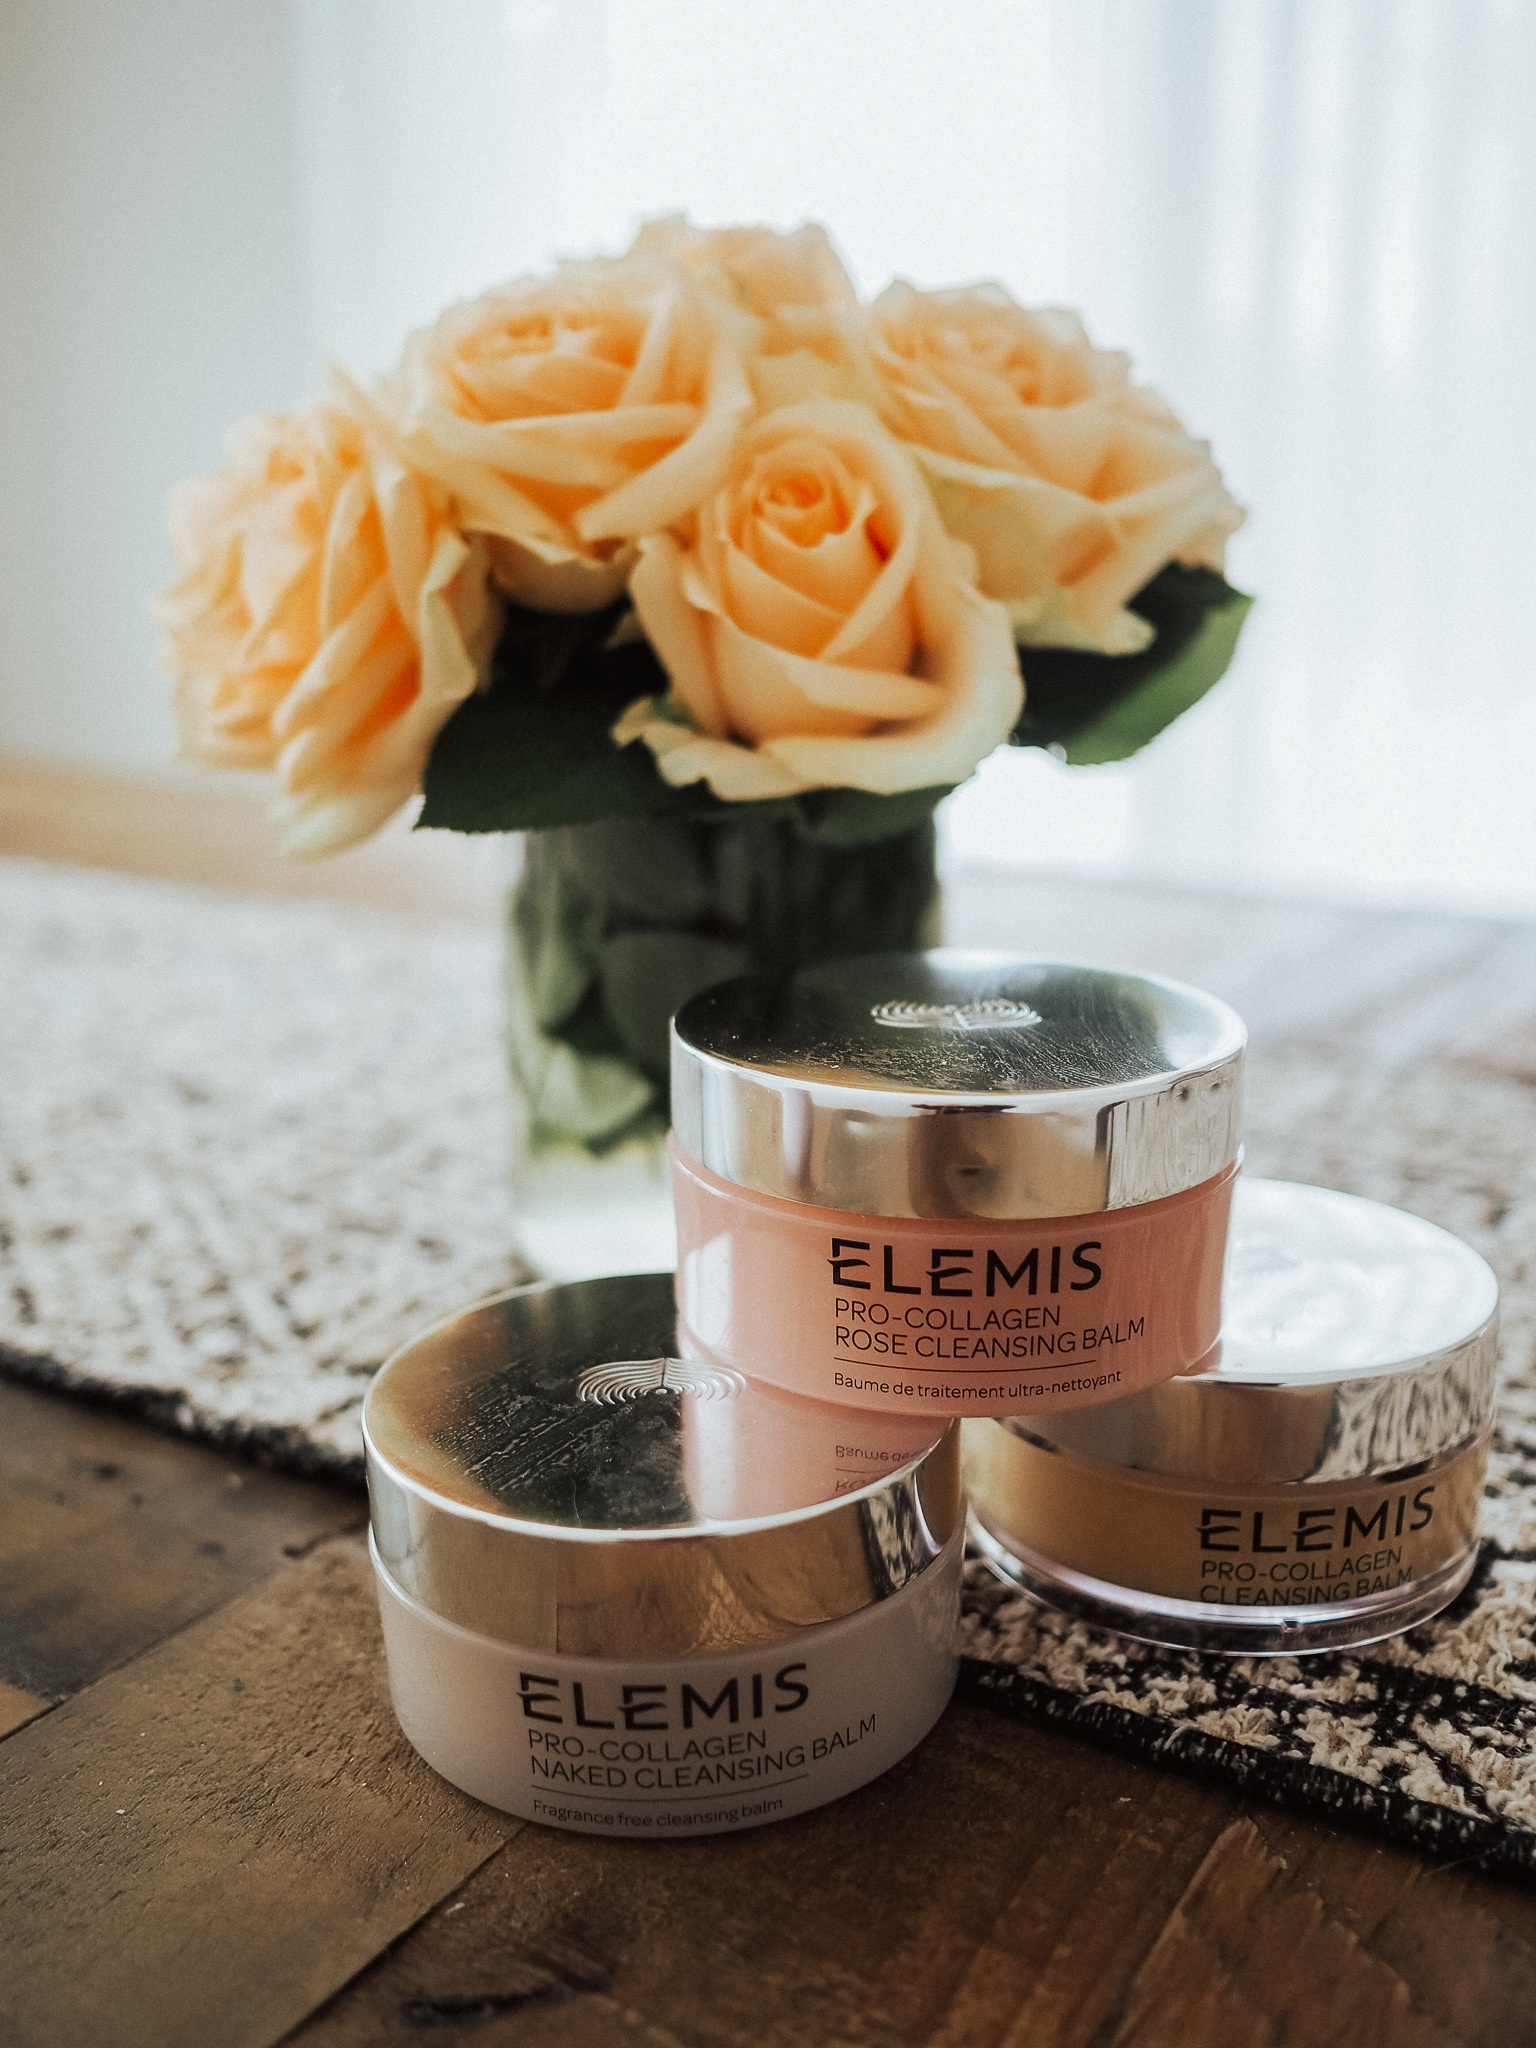 The Elemis cleansing balm line is hands down the best cleansing balm on the market - and Kelsey from B&B breaks down why.